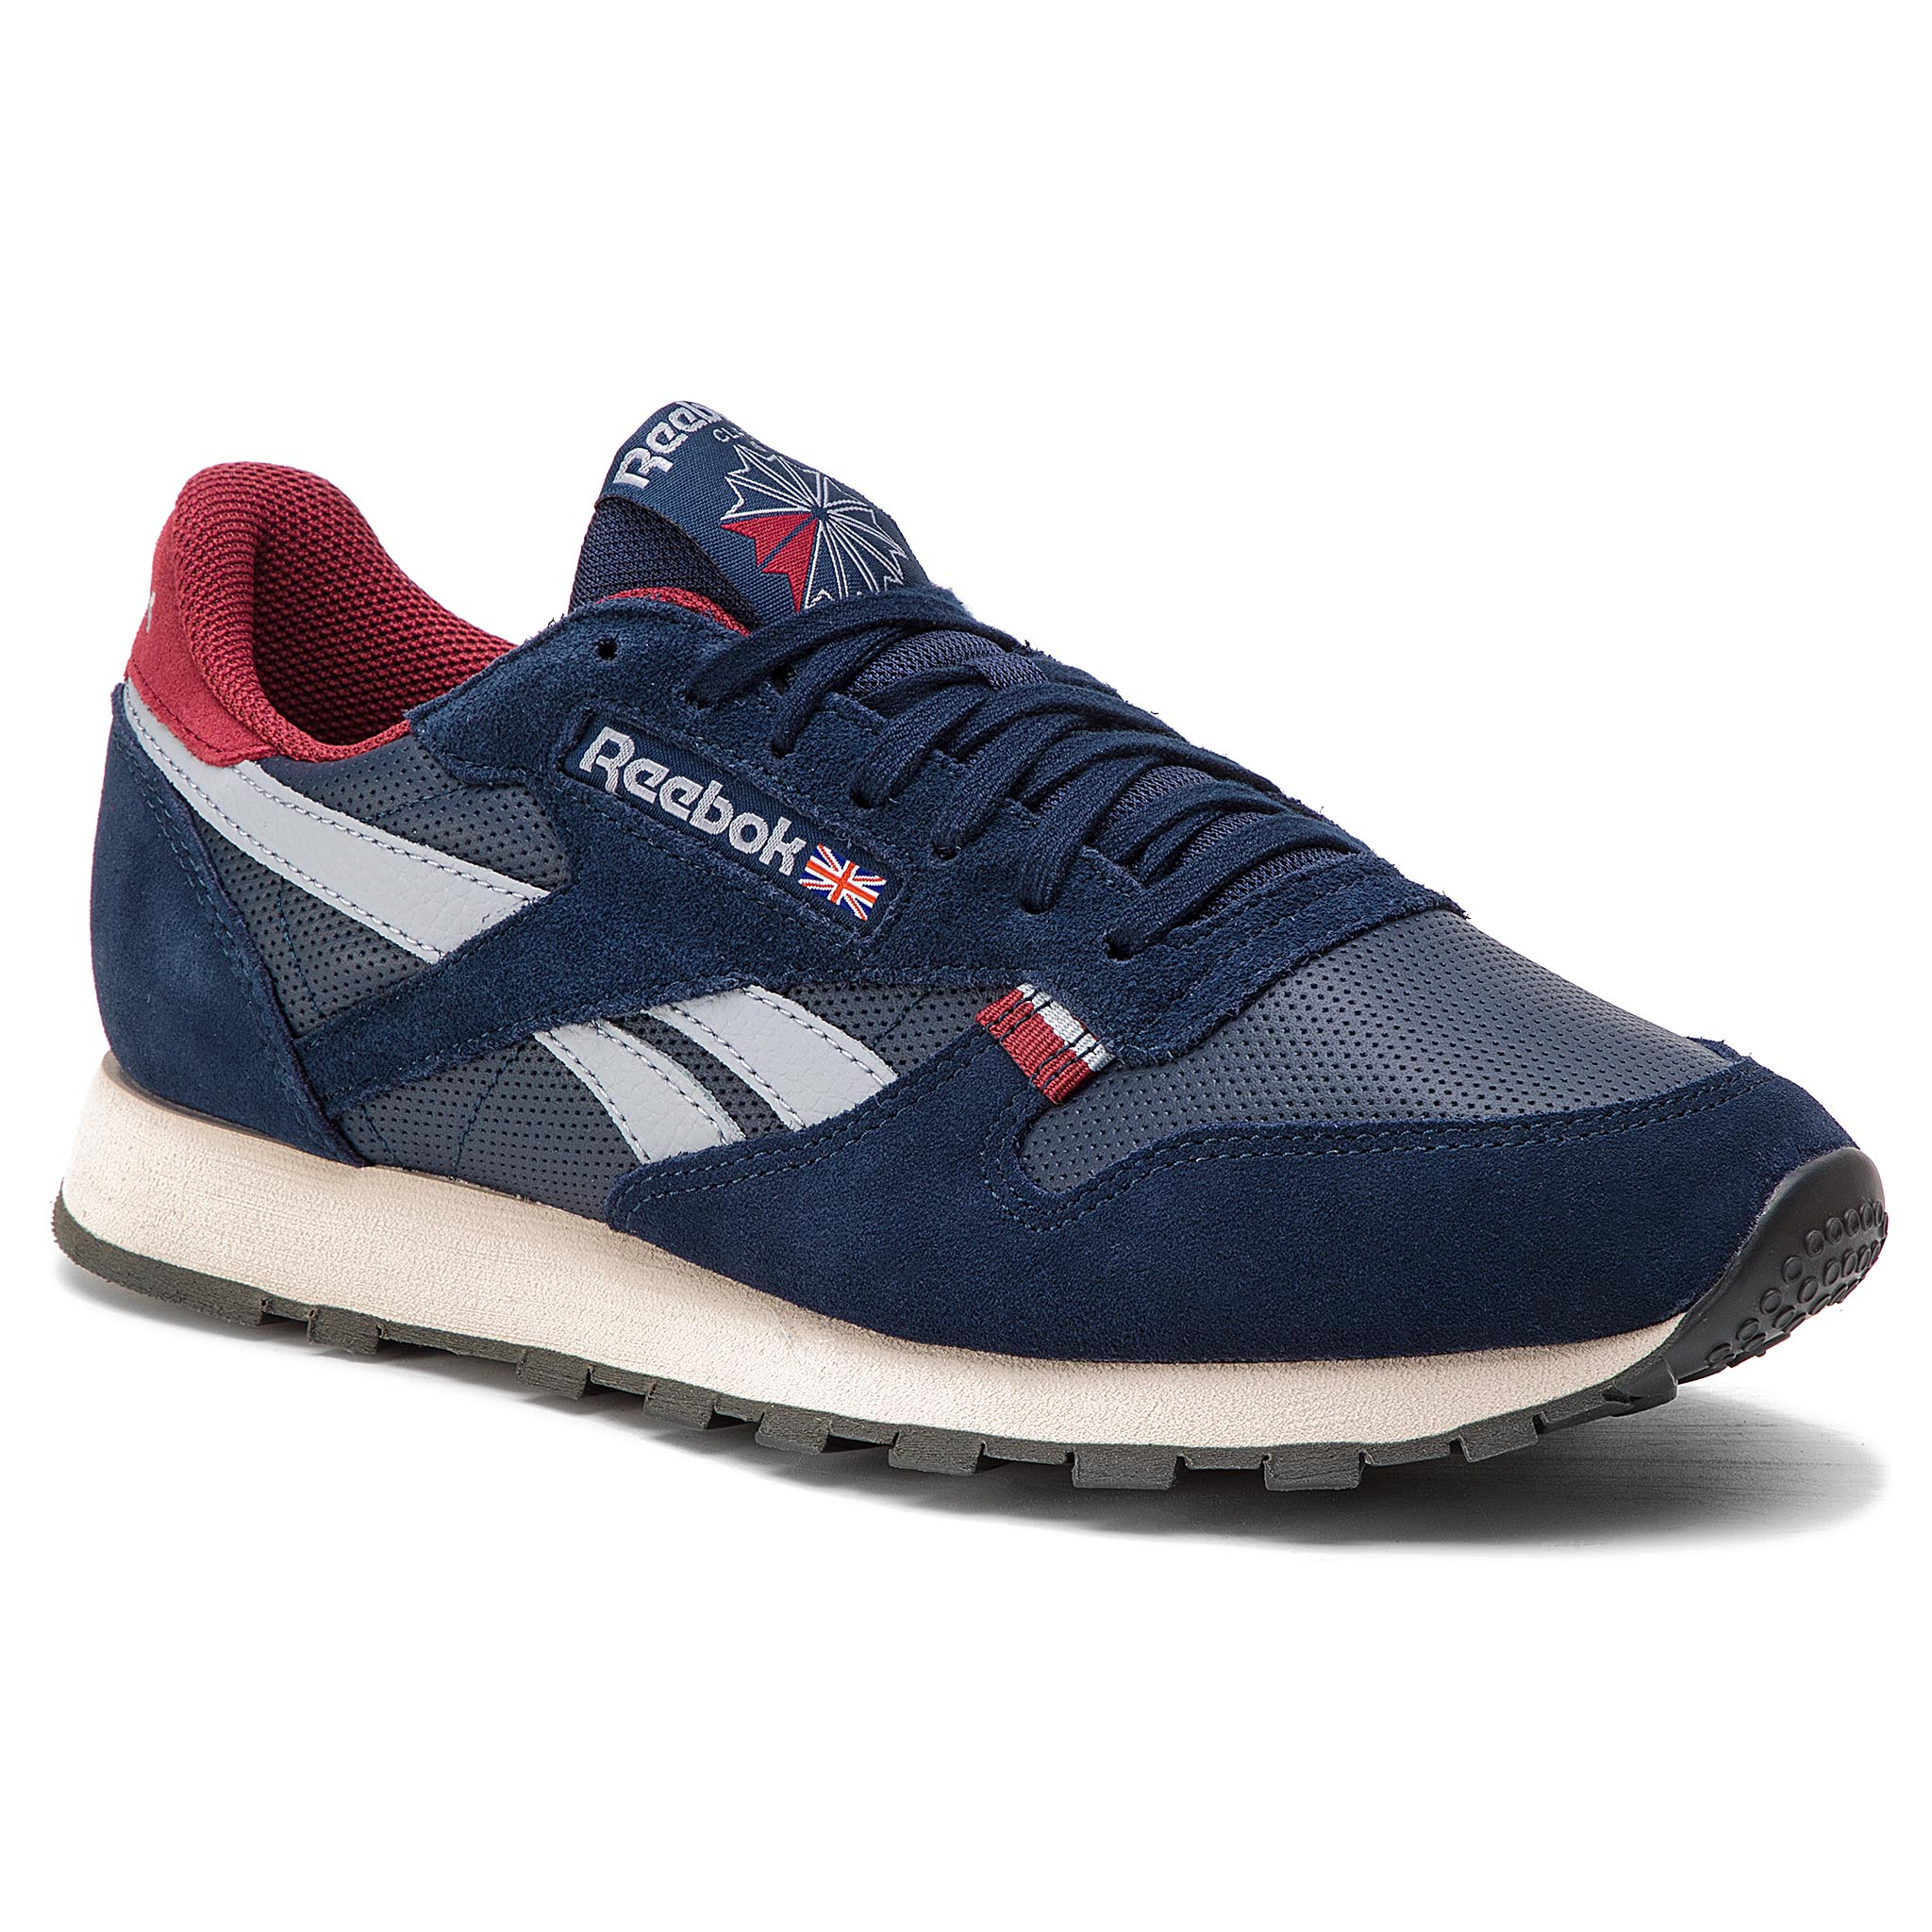 Image of Scarpe Reebok - CL Leather Mu CN7178 Navy/Red/Stucco/Grey